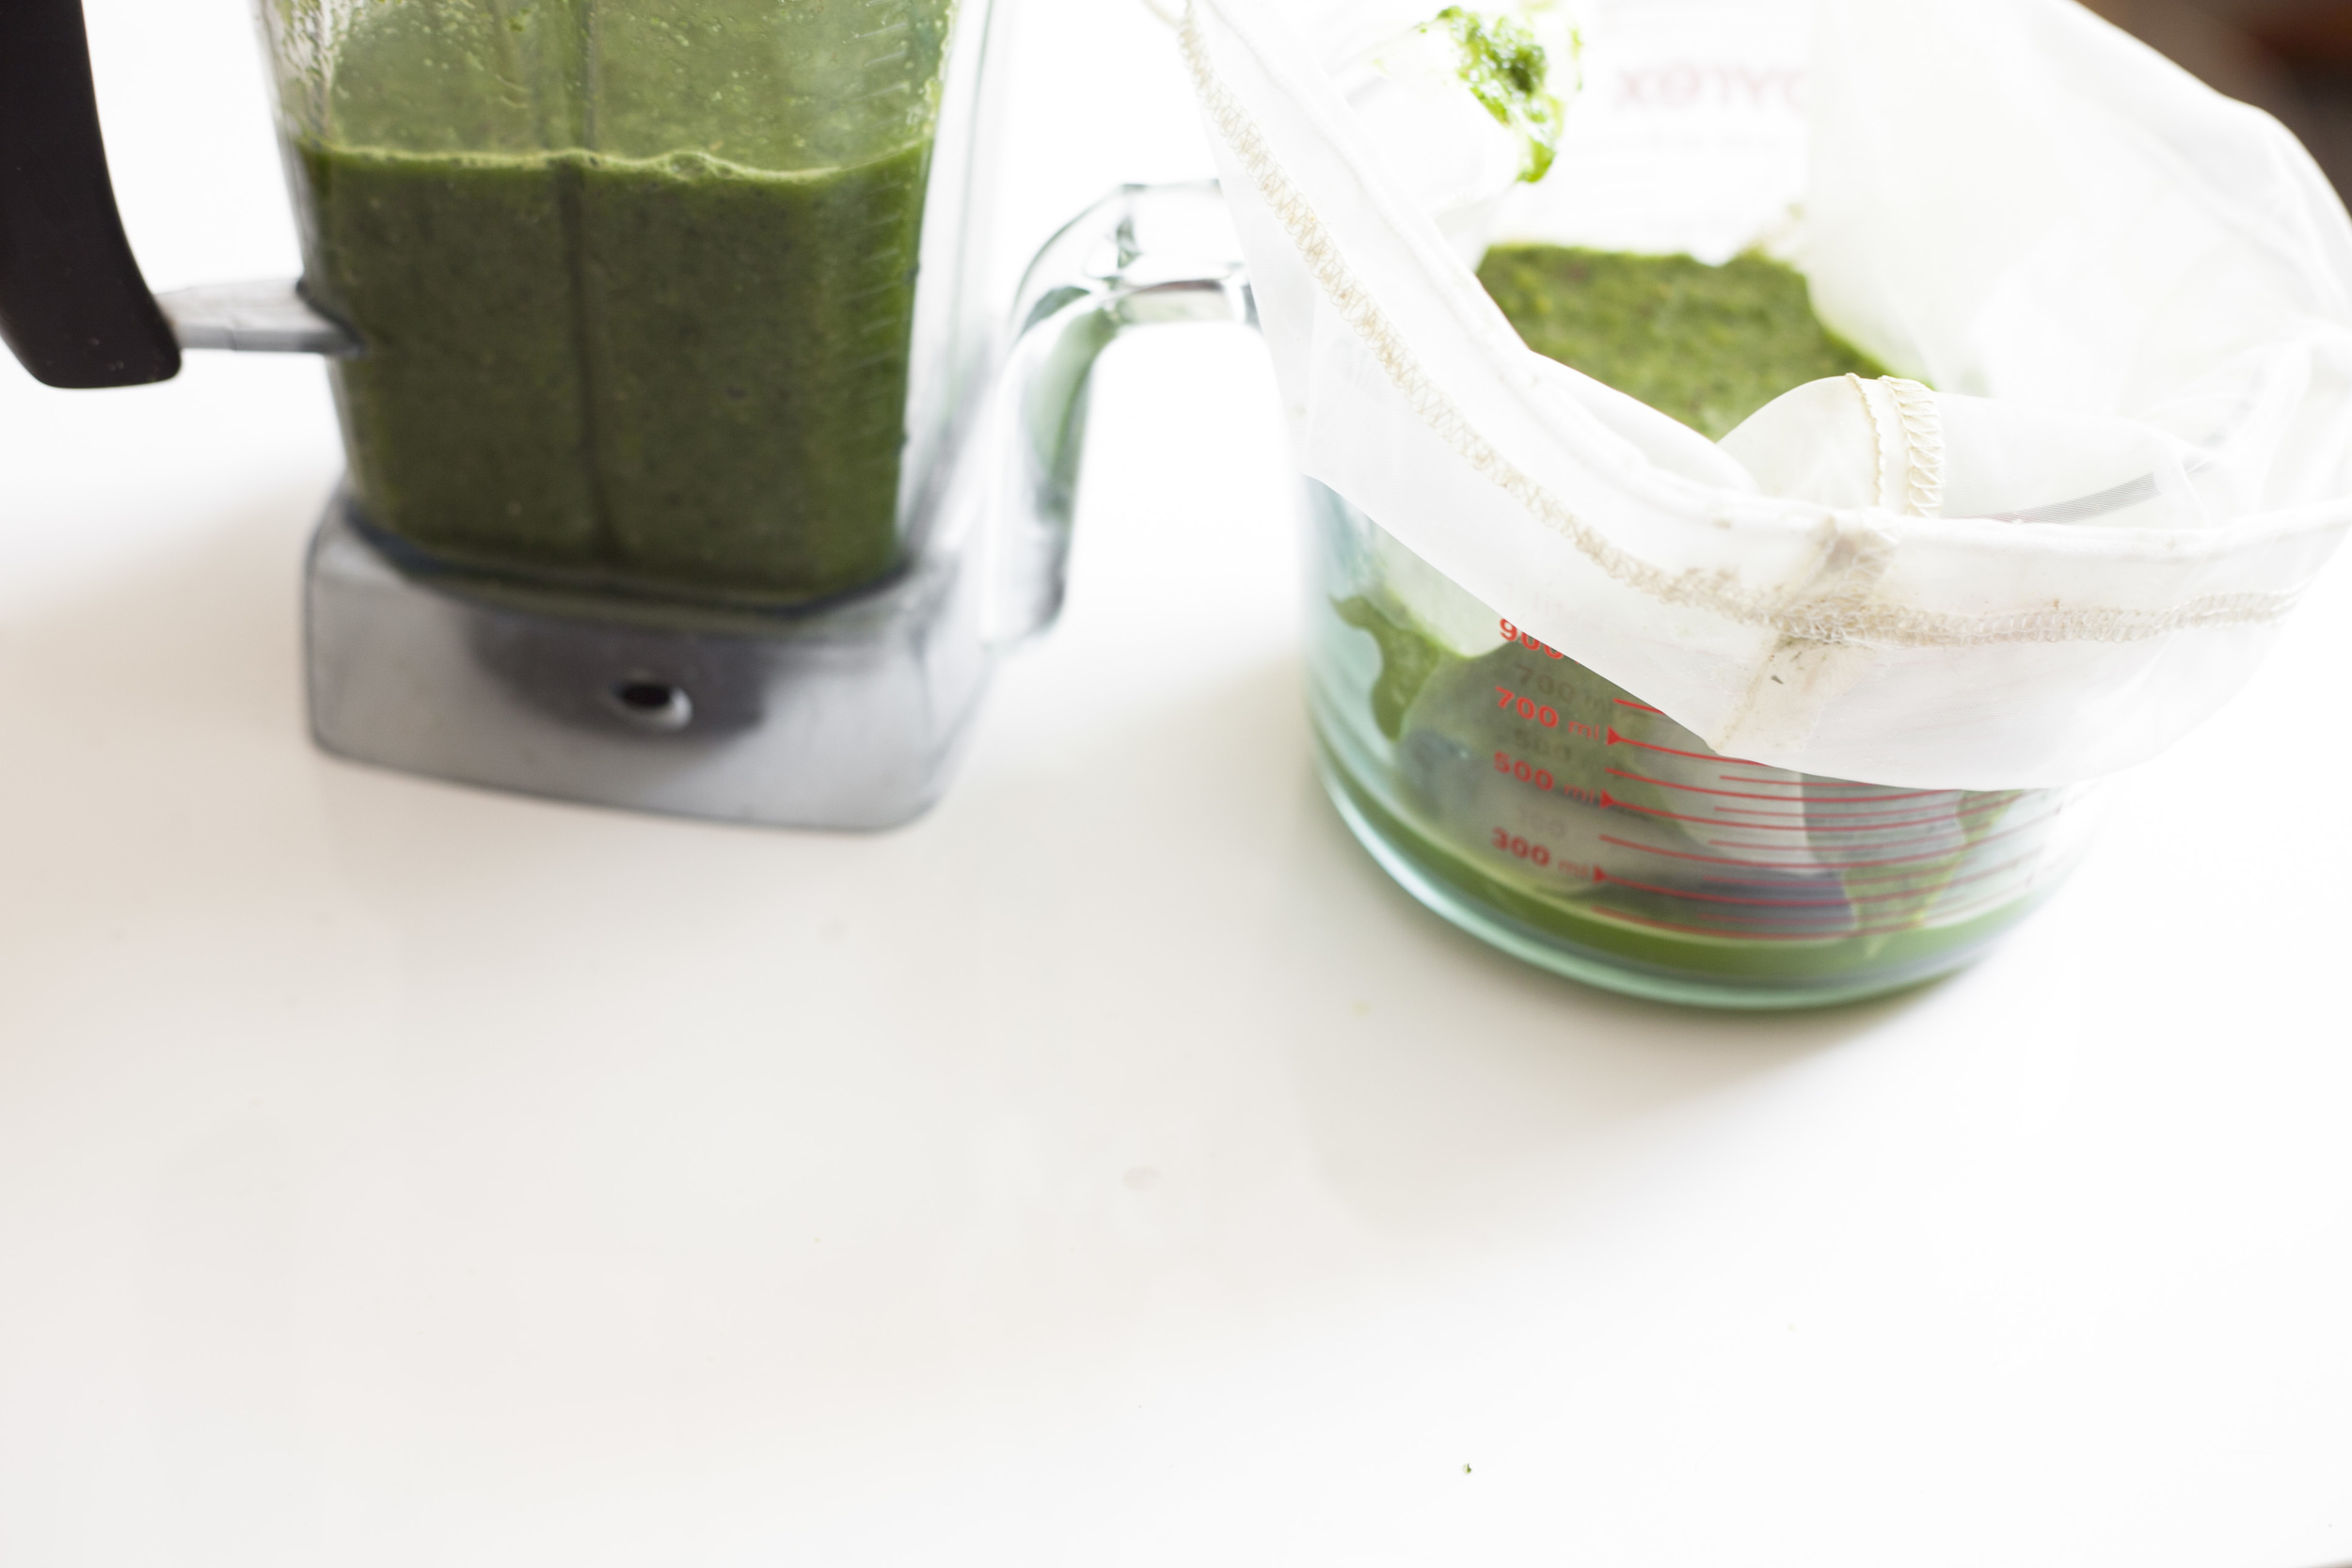 How To Make Green Juice In A Blender Without A Juicer